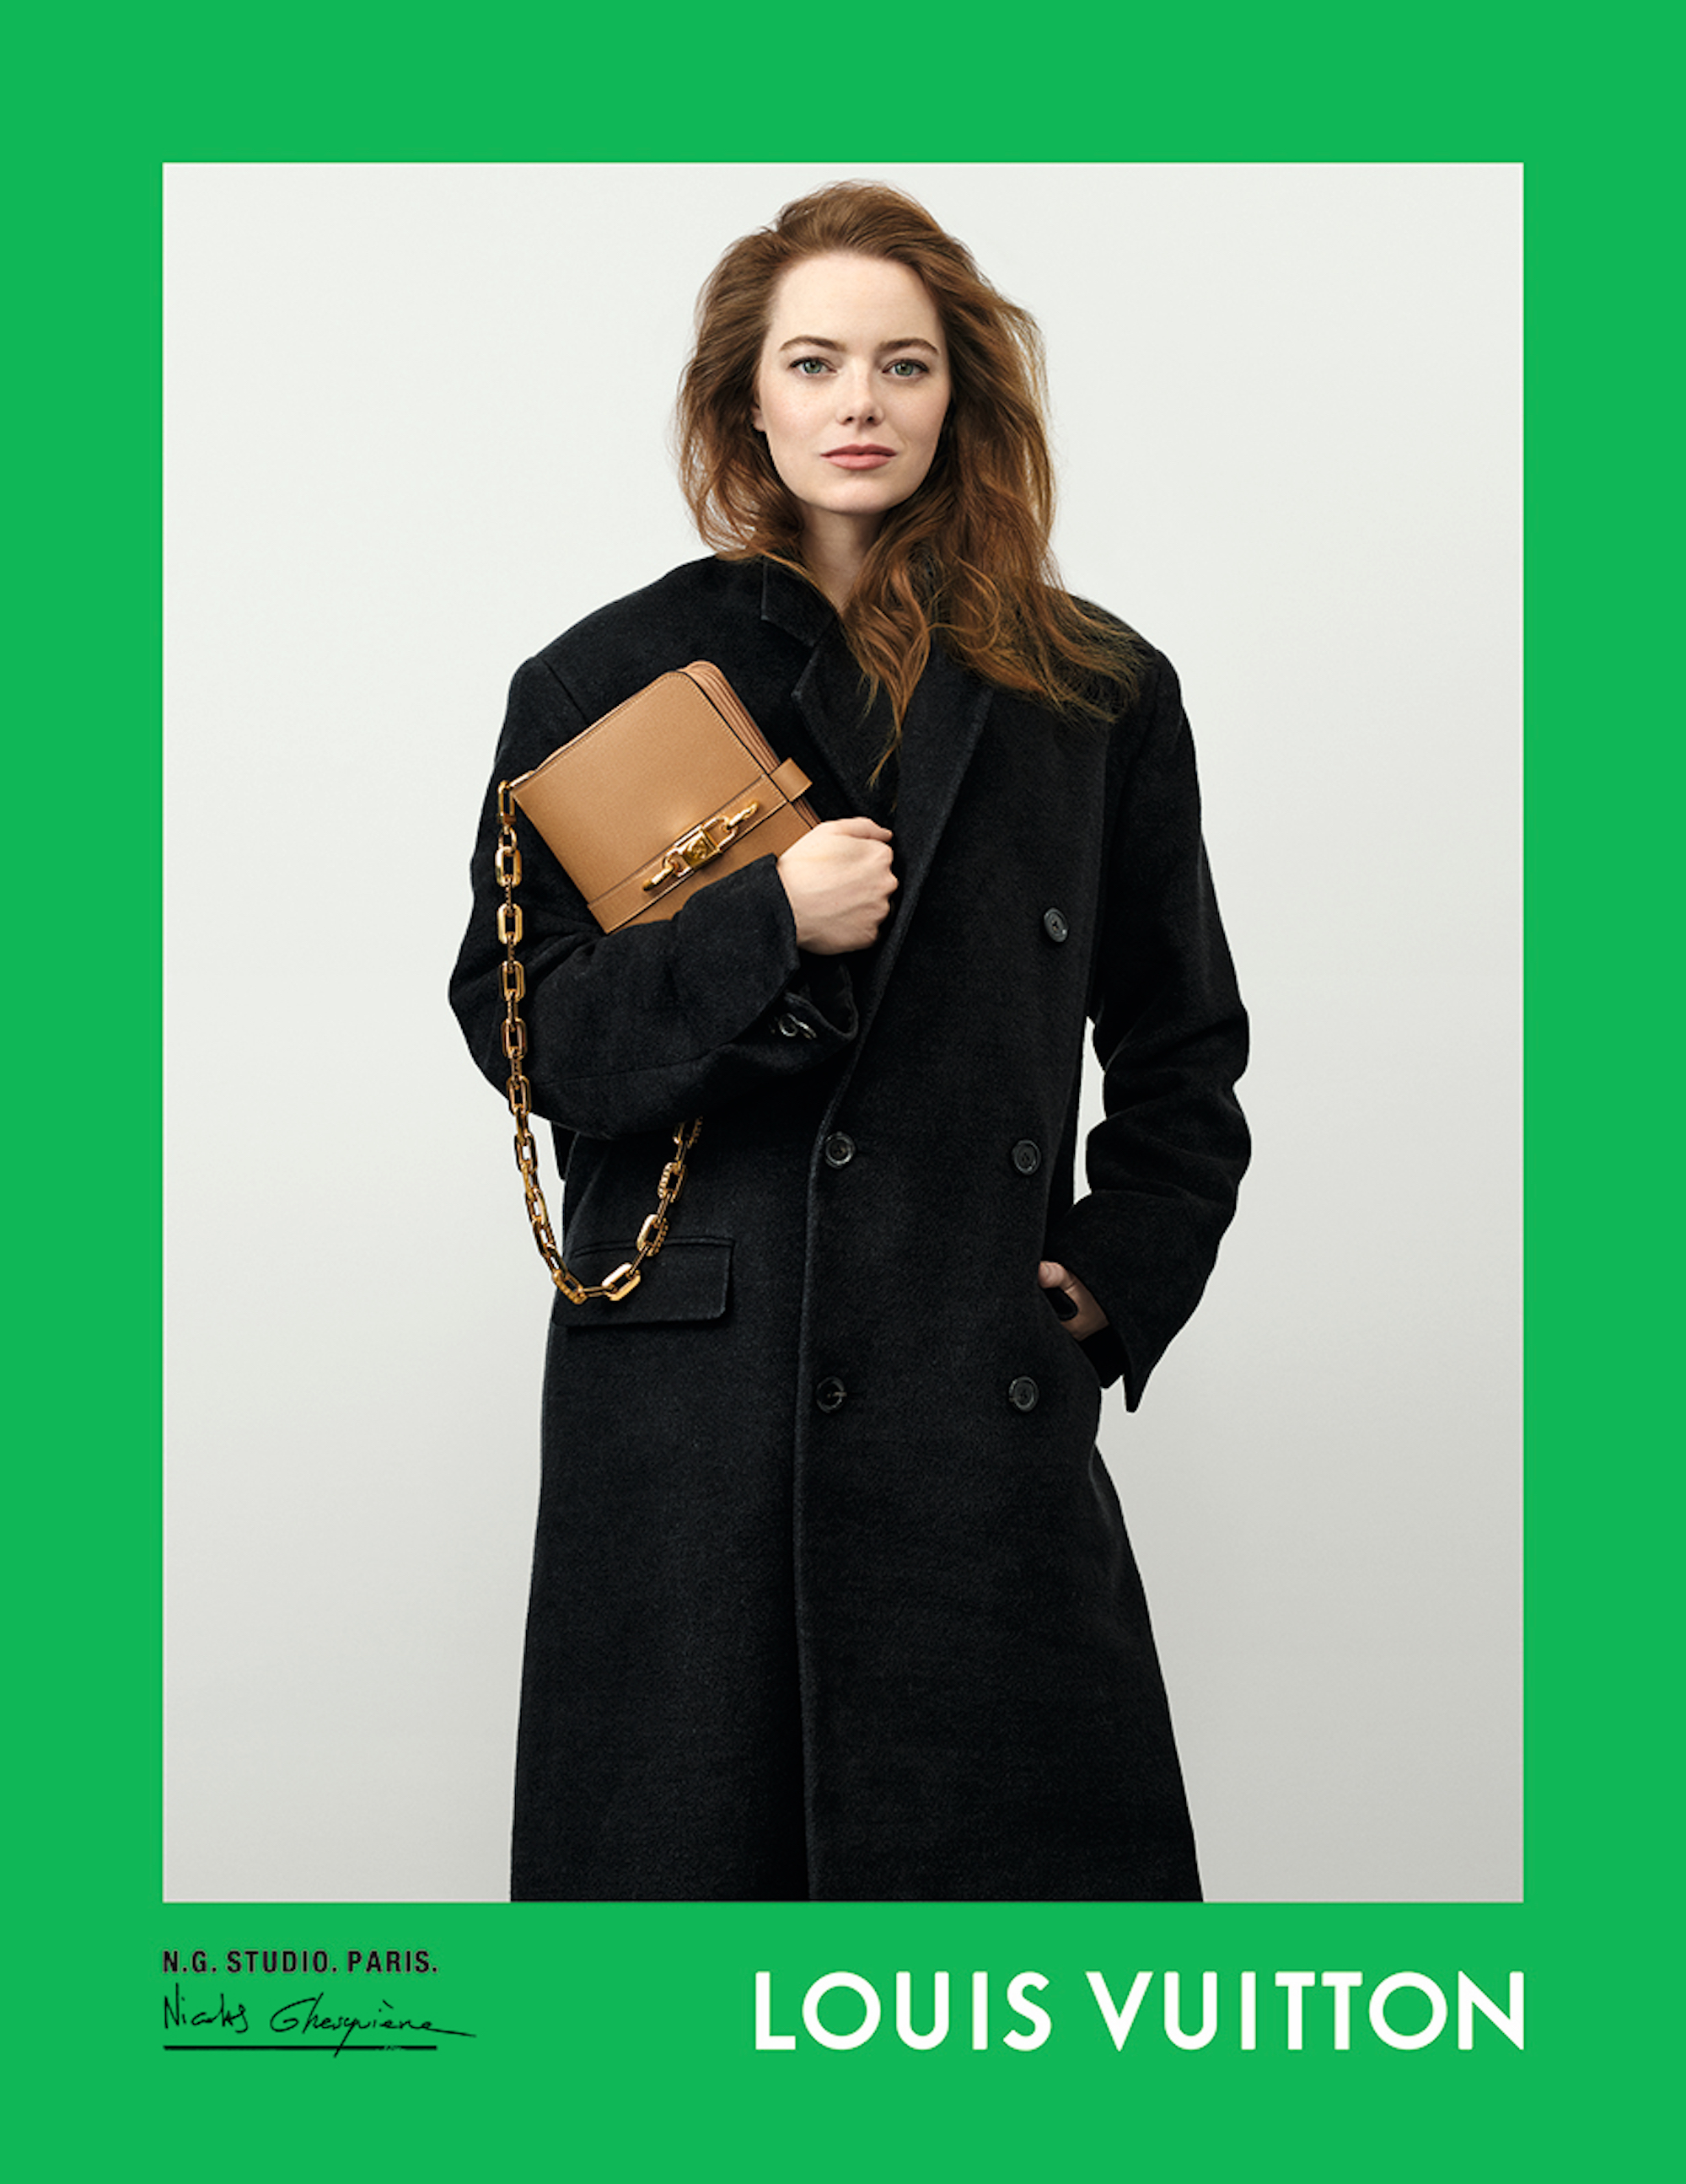 Louis Vuitton Spring Summer 2021 campaign, Nicolas Ghesquière, creative director, photographer, Oscar-winning actress Emma Stone